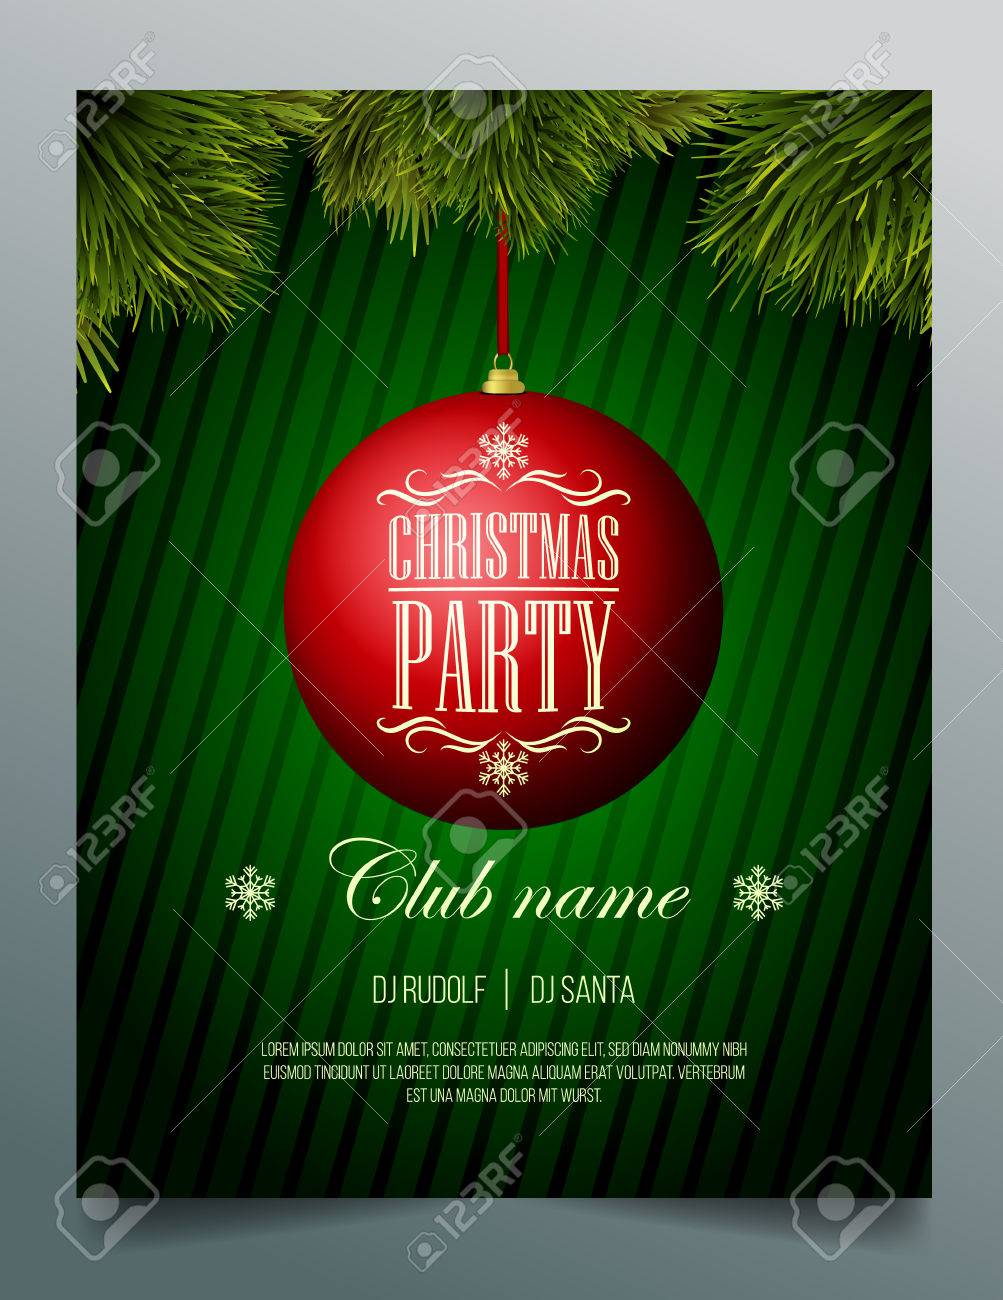 christmas party flyer template red bauble on a green background christmas party flyer template red bauble on a green background stock vector 34837715